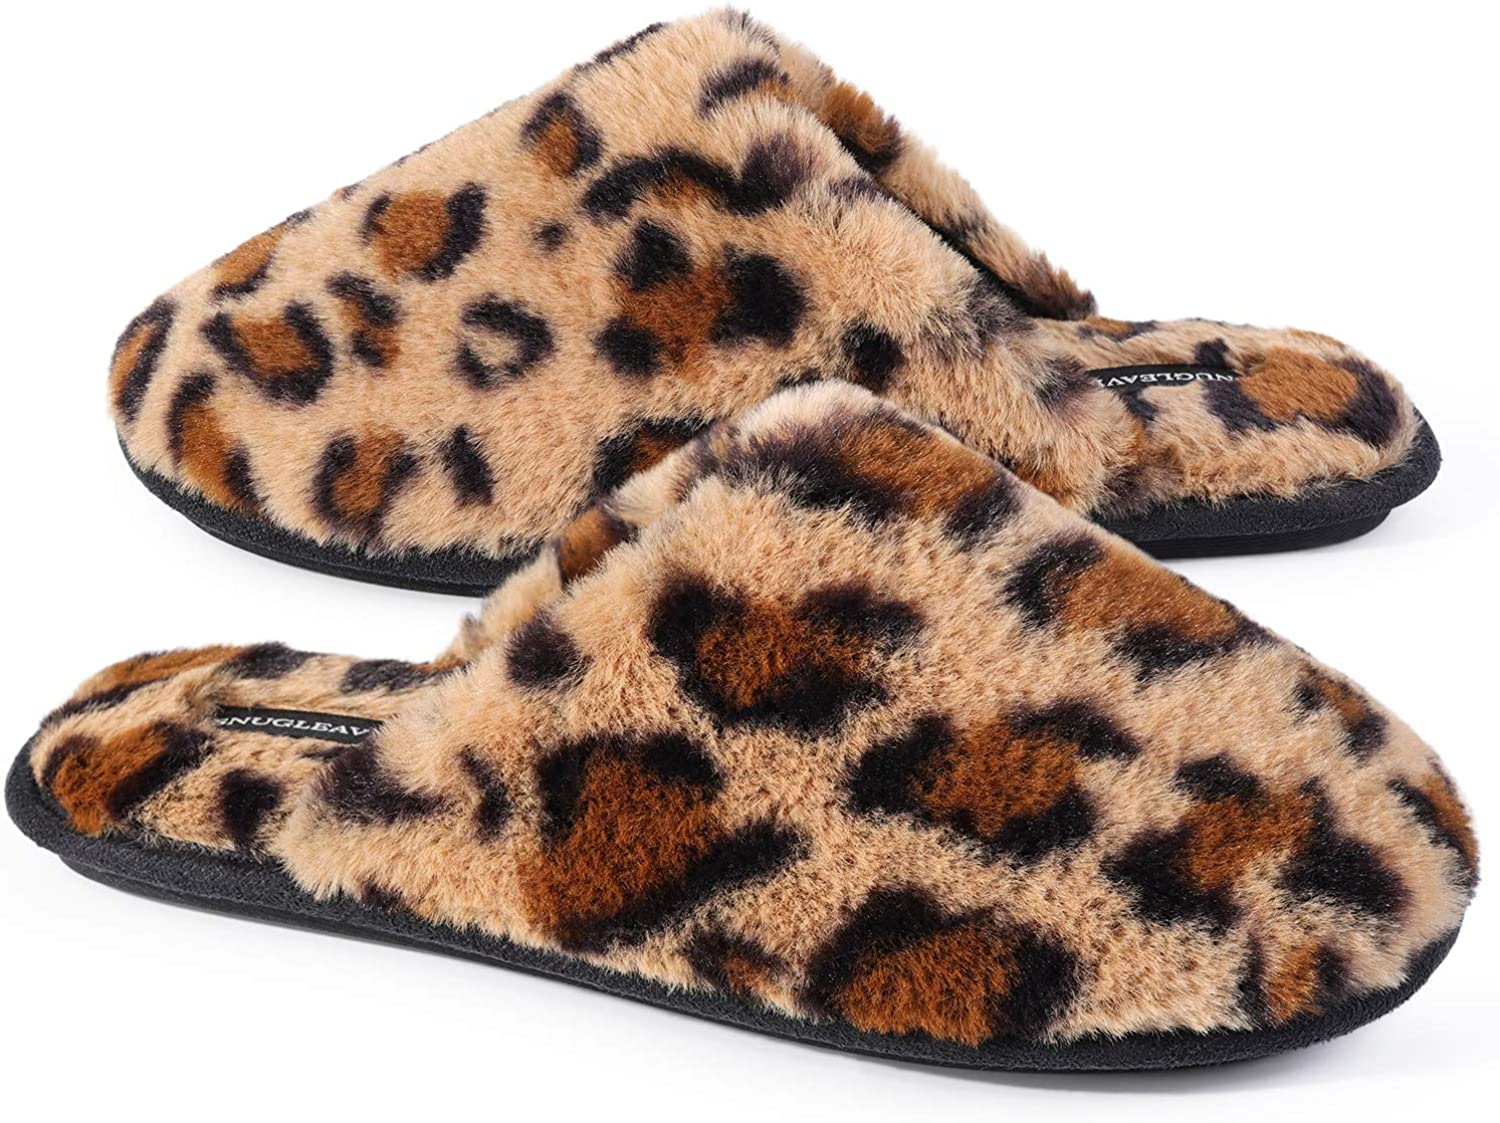 Snug Leaves Women's Fuzzy Memory Foam House Slip on Slippers with Furry Faux Fur Lined Bedroom Shoes